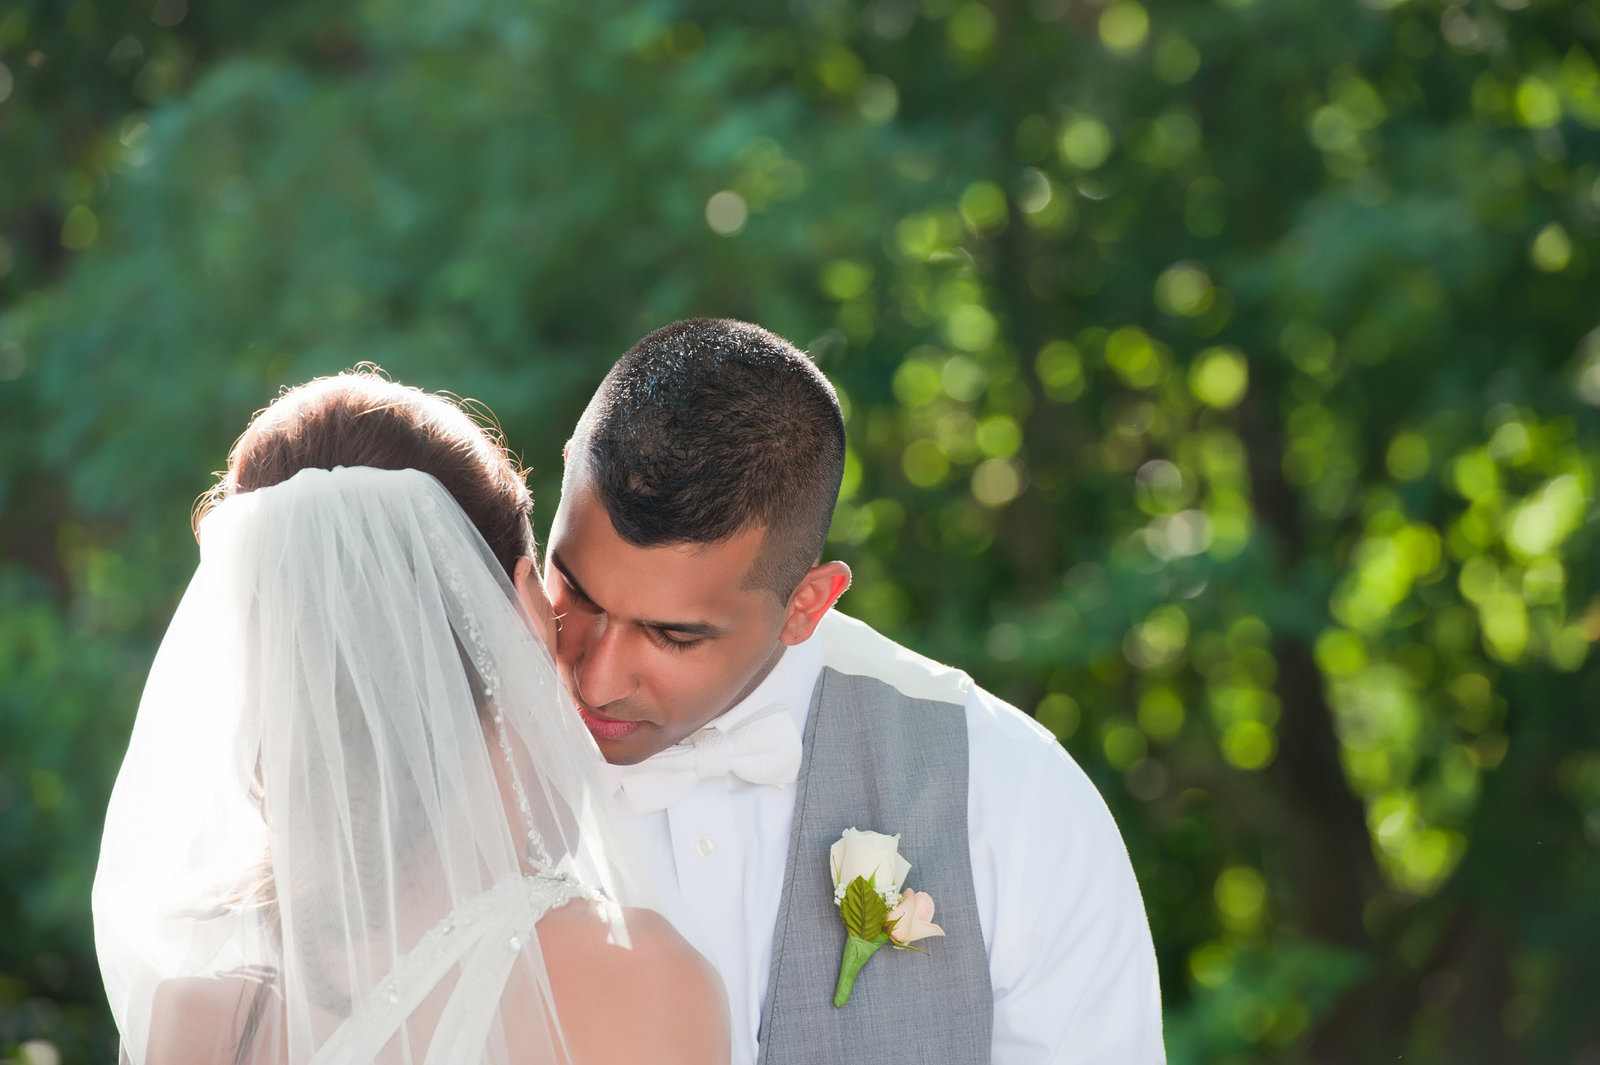 kc-professional-wedding-photographers-0021